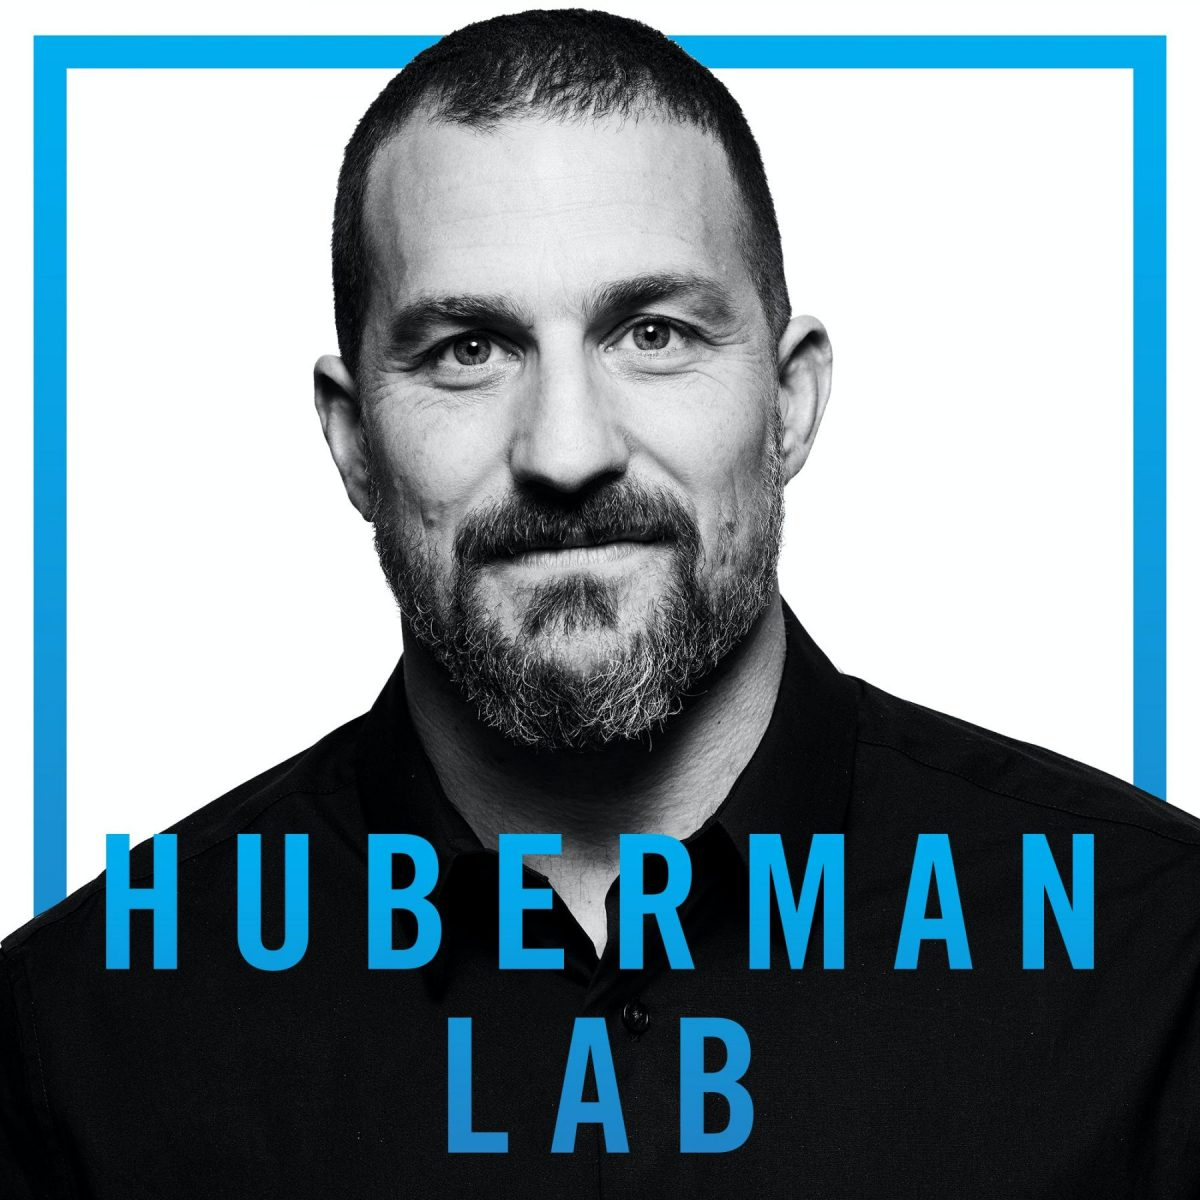 episode-27:-the-science-of-hearing,-steadiness-&-accelerated-studying-|-huberman-lab